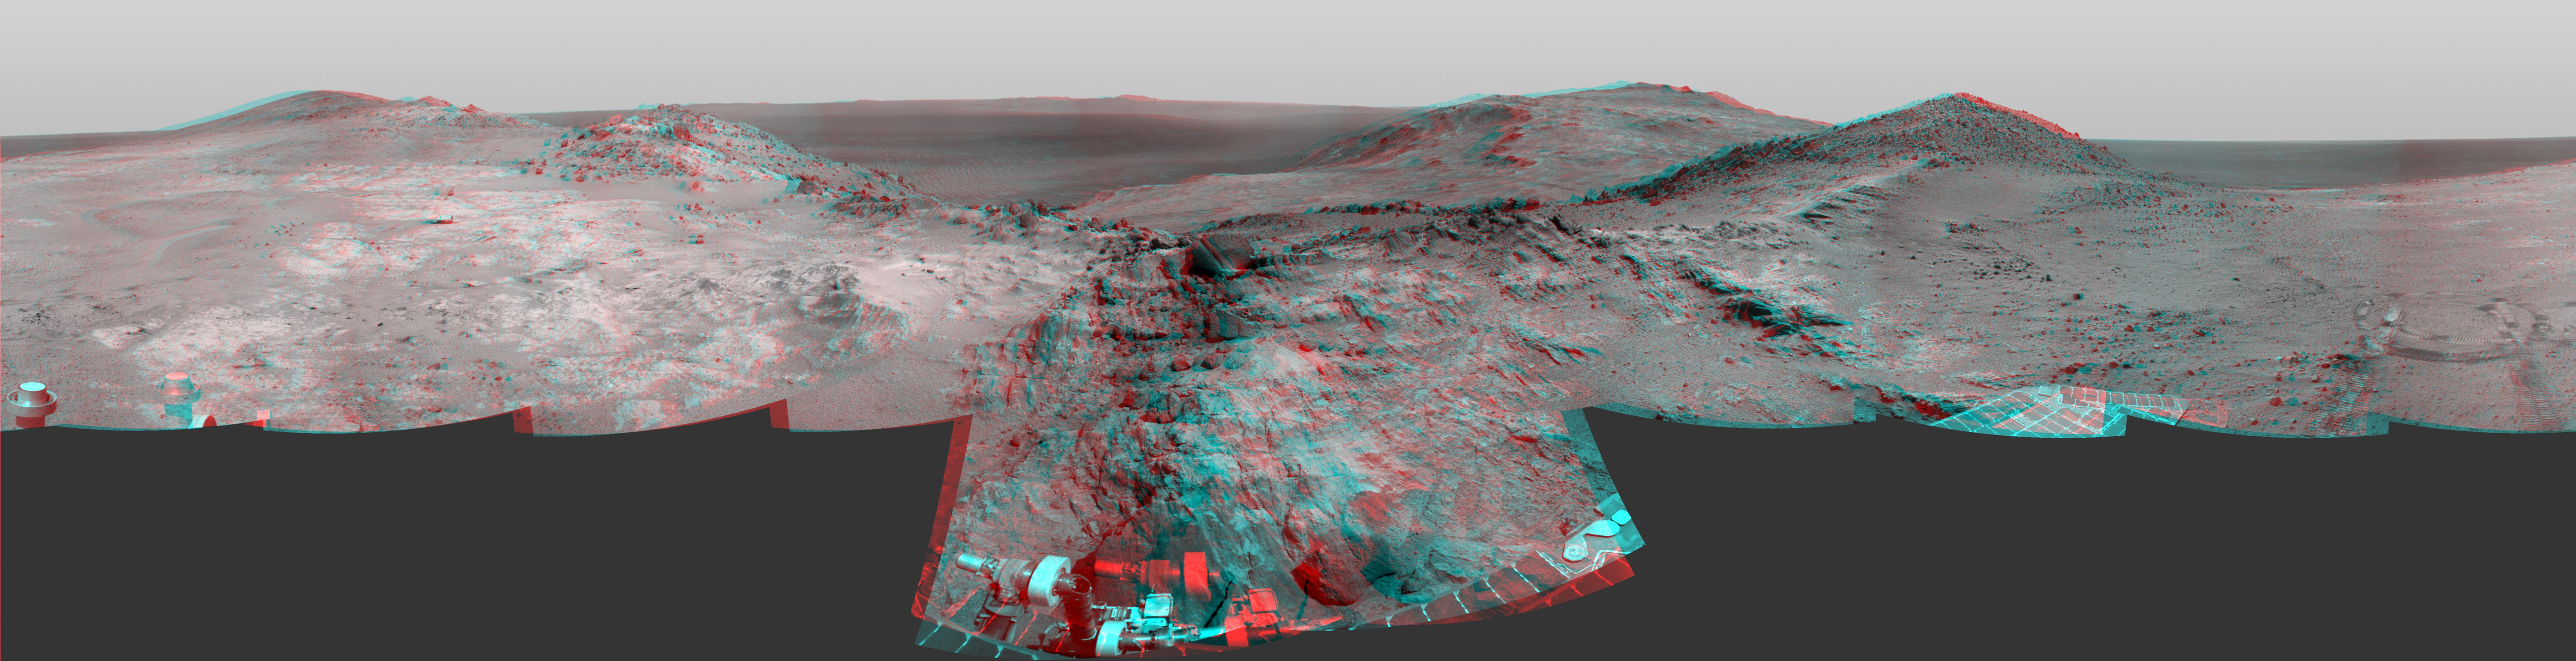 3D image, marathon valley mars, mars rover panoramic image stitched together.